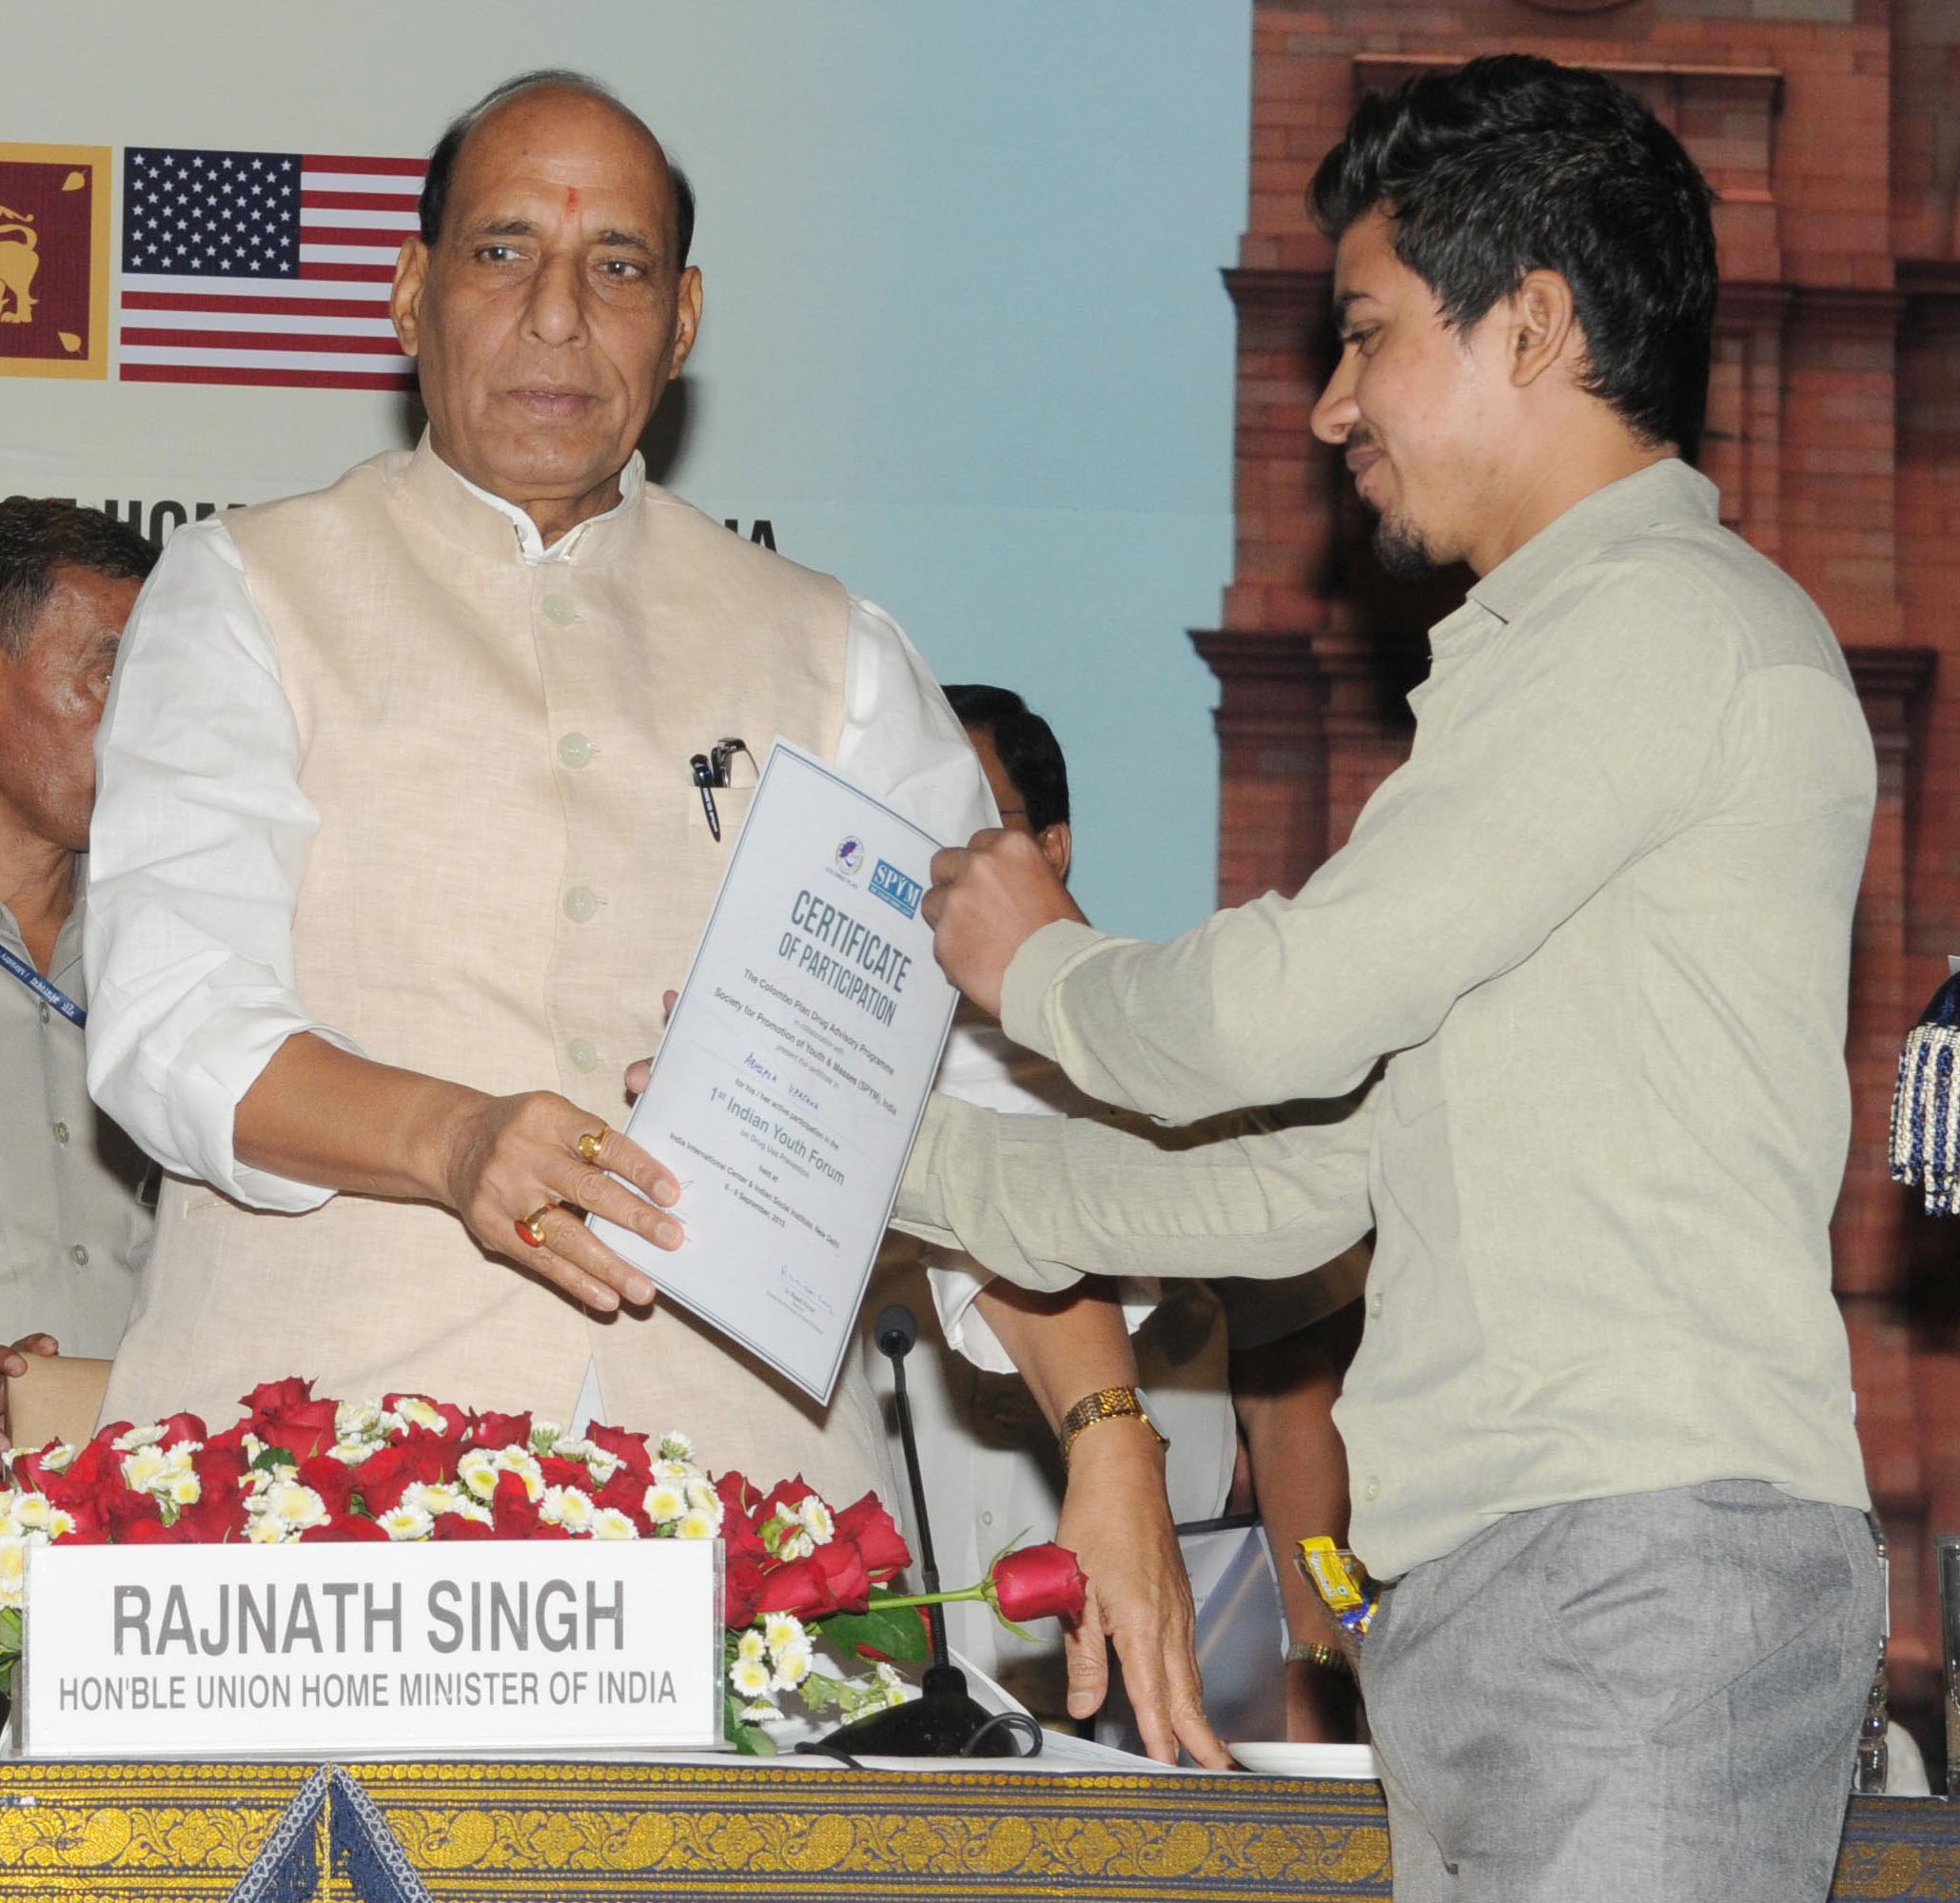 The Union Home Minister, Shri Rajnath Singh distributing the certificate to a youth representative at the inauguration of a three-day workshop on Sub-Regional Drug 'Focal Point Meeting and DDR Expert Group Consultation, South Asia under Colombo Plan Drug Advisory Programme', in New Delhi on September 09, 2015.